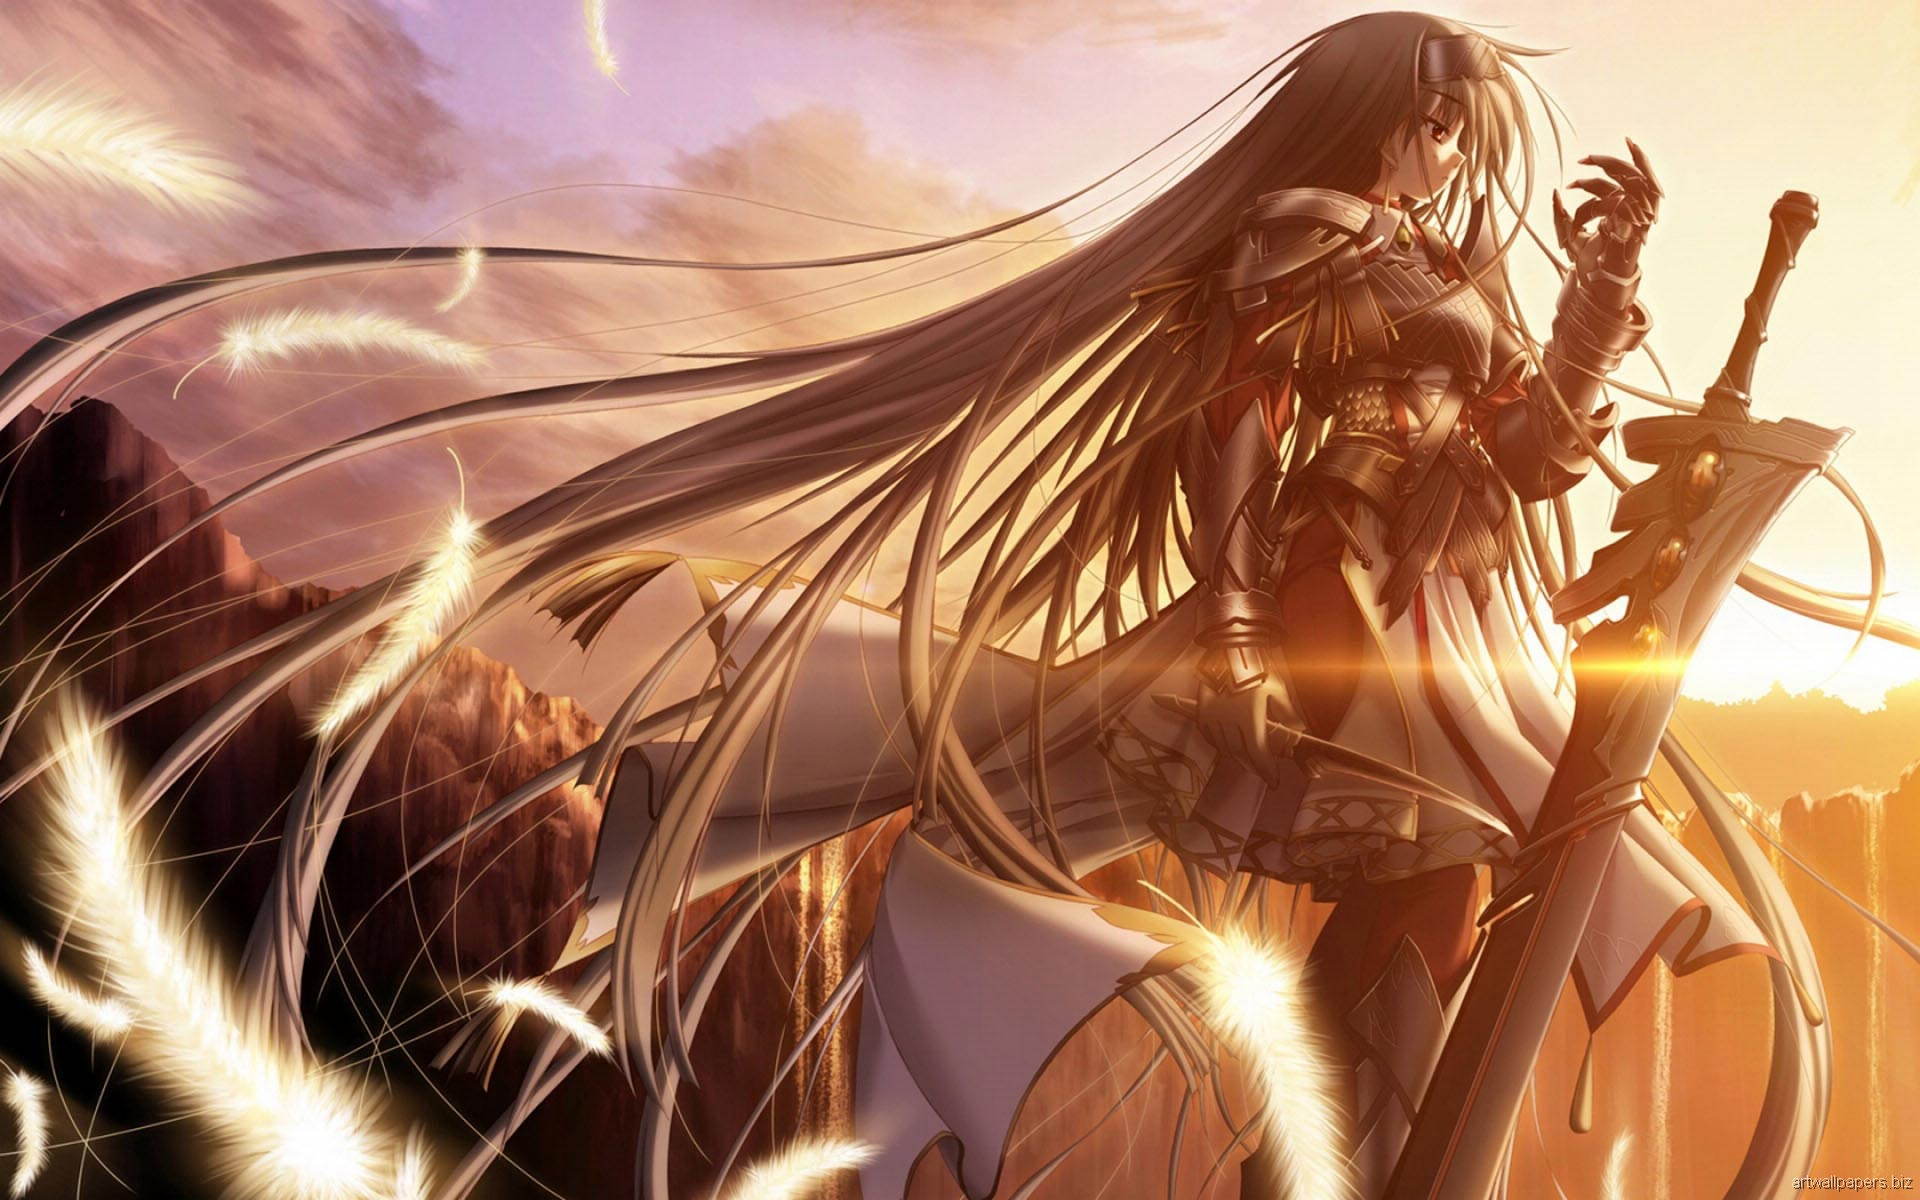 Beautiful anime wallpapers stress effect - Anime background ...